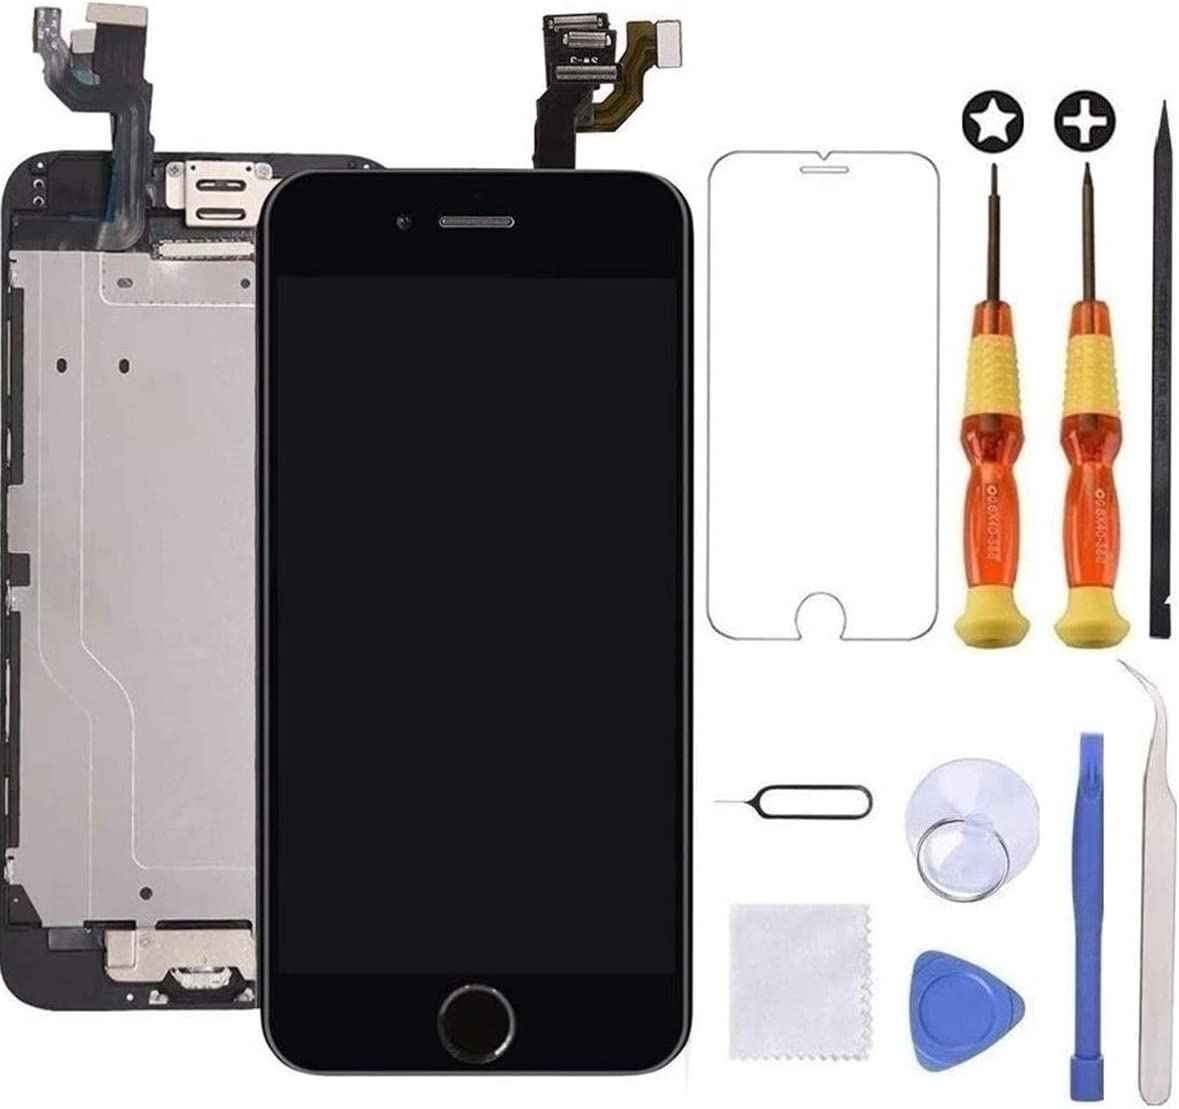 Brinonac for iPhone 6 Screen Replacement Black Touch Display LCD Digitizer Full Assembly with Front Camera,Proximity Sensor,Ear Speaker and Home Button Including Repair Tool and Screen Protector